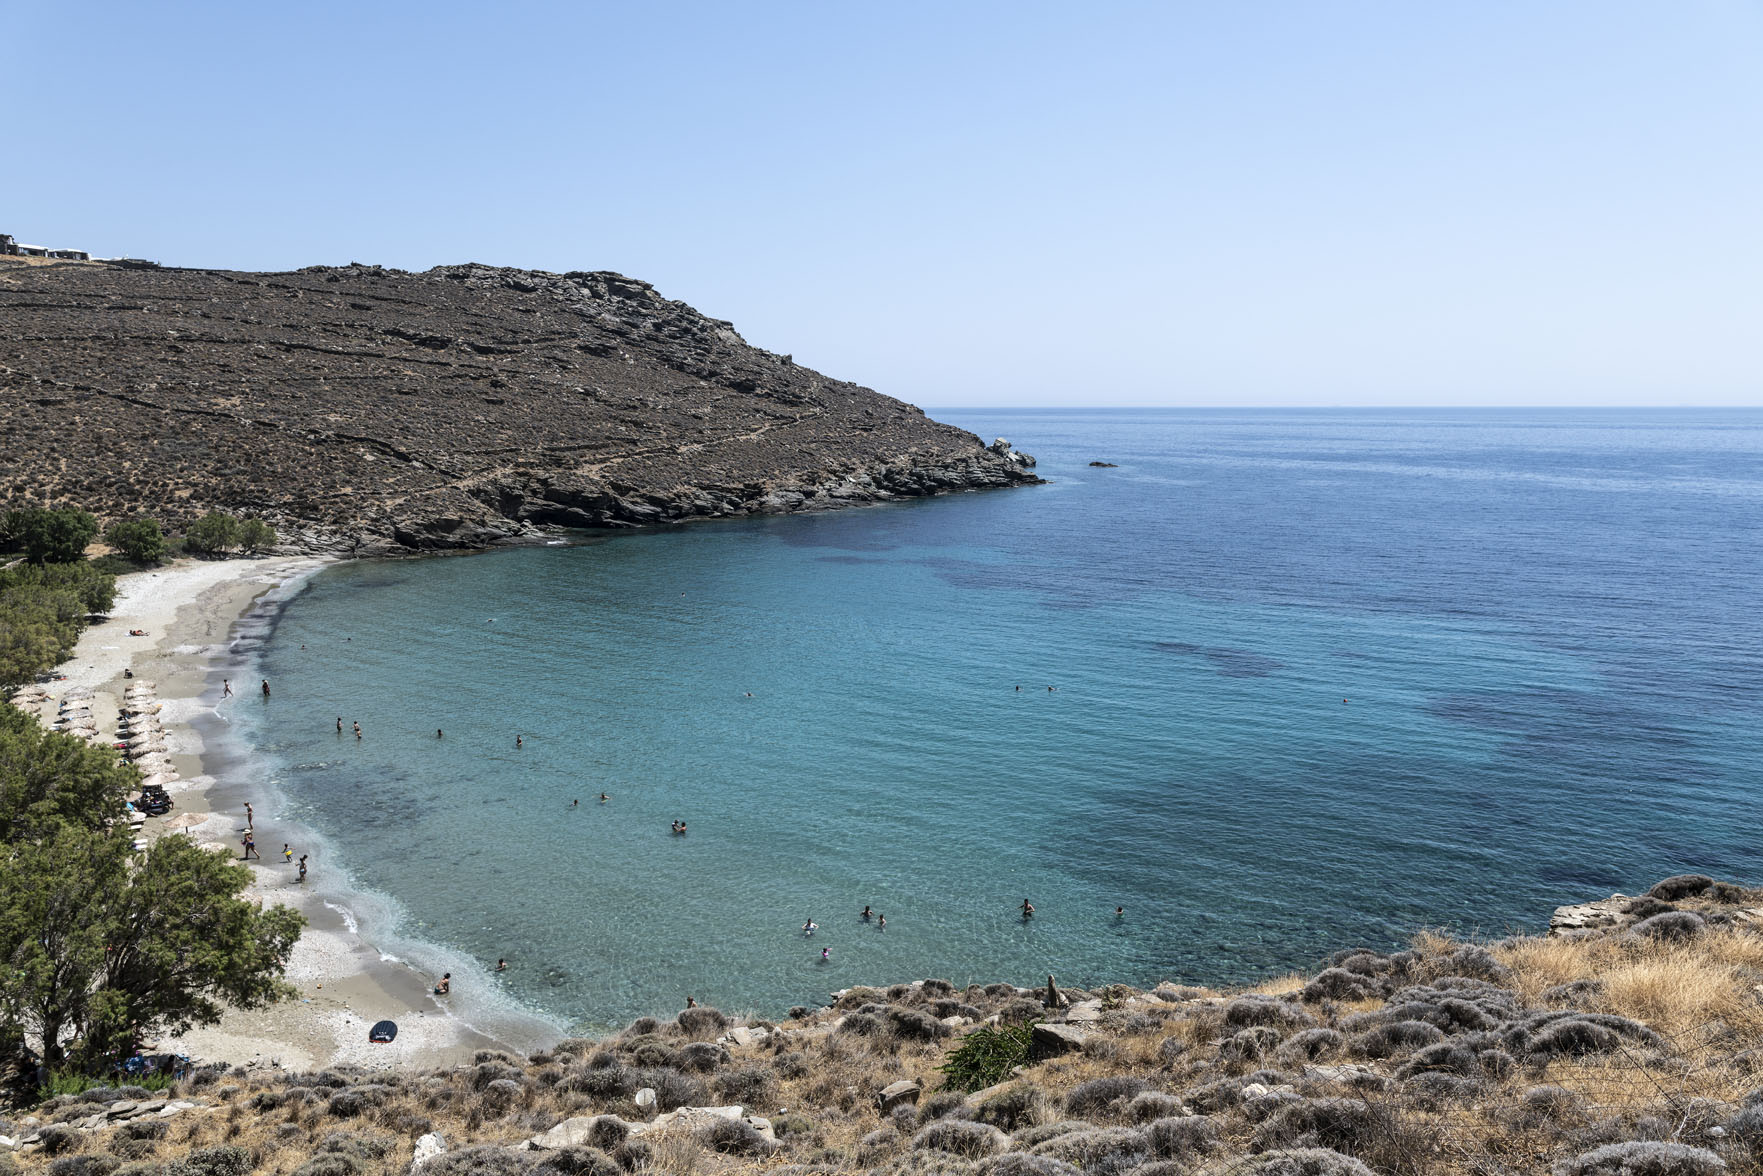 The New York Times about the Greek island of Tinos